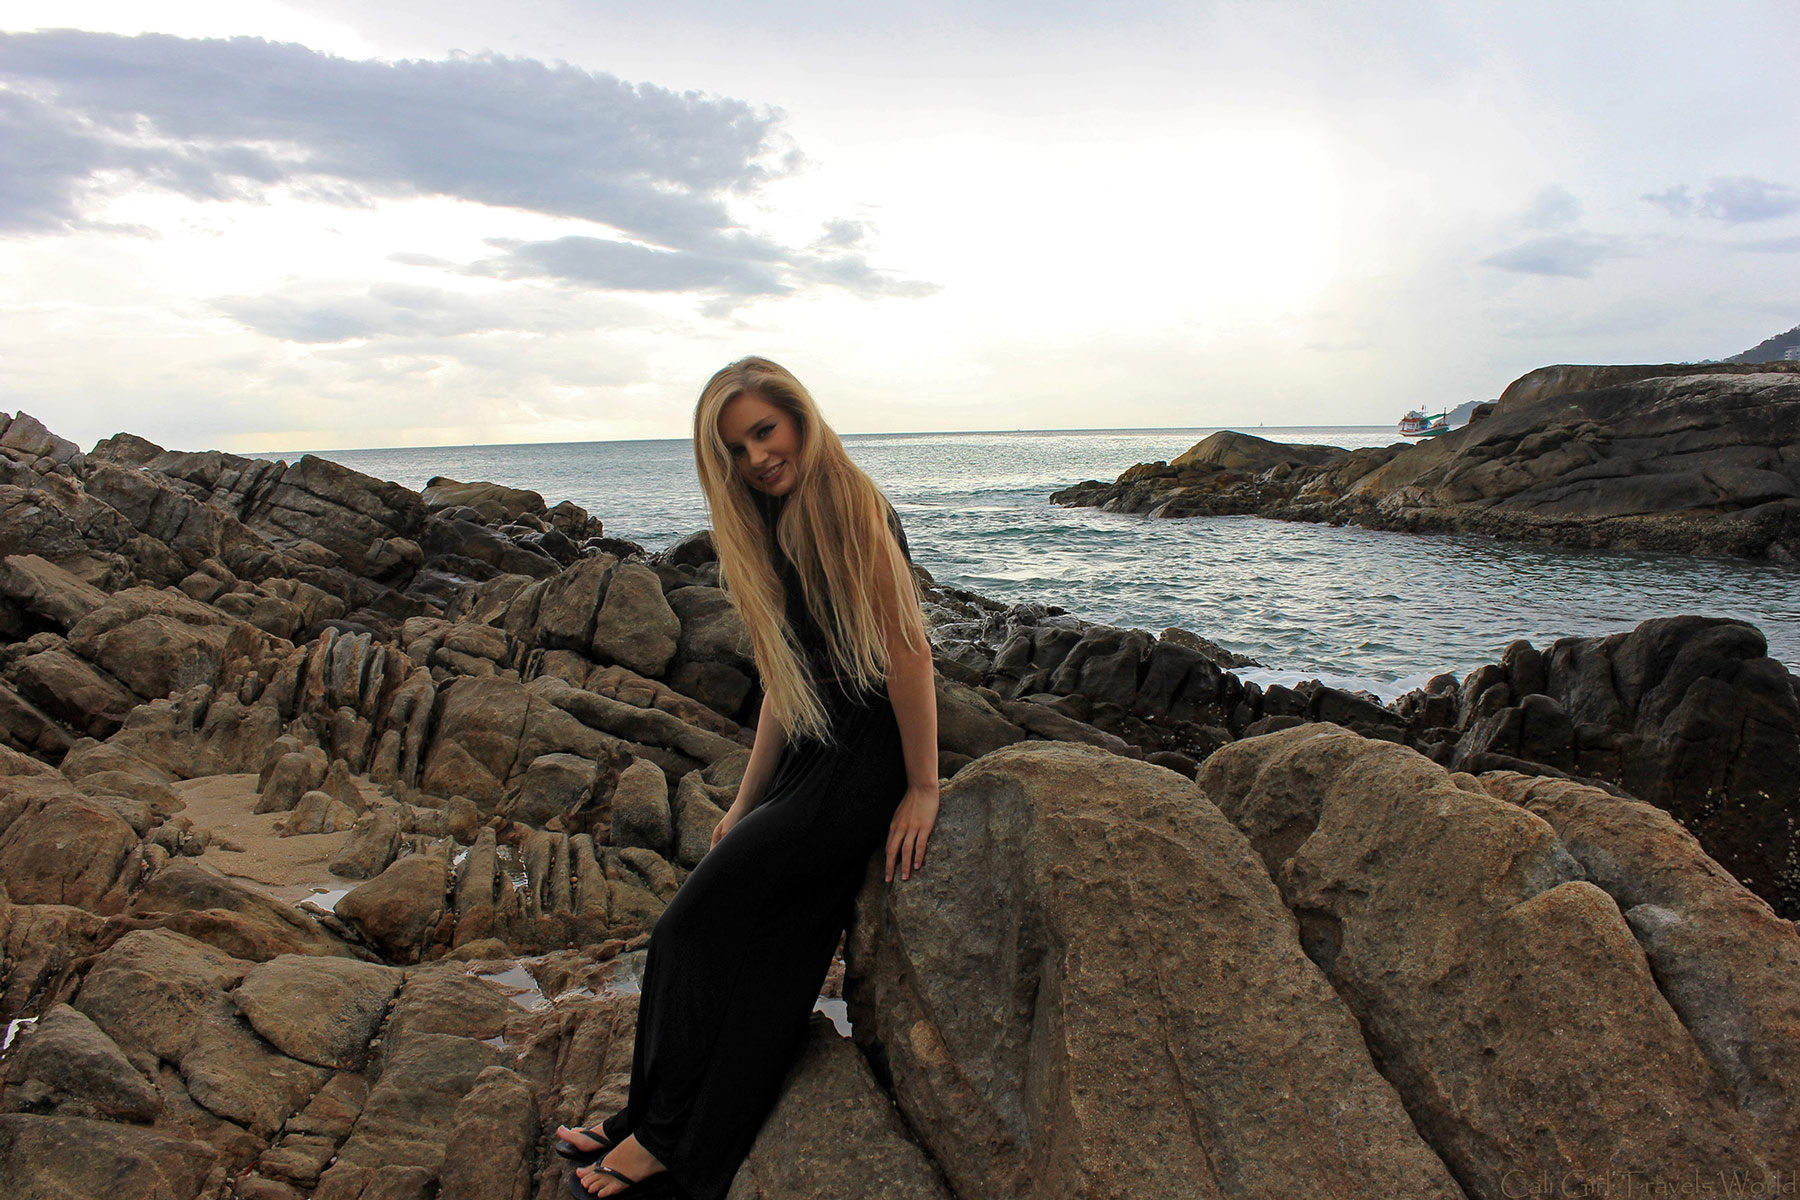 Blonde female travel blogger in long black dress at rocky beach smiling.